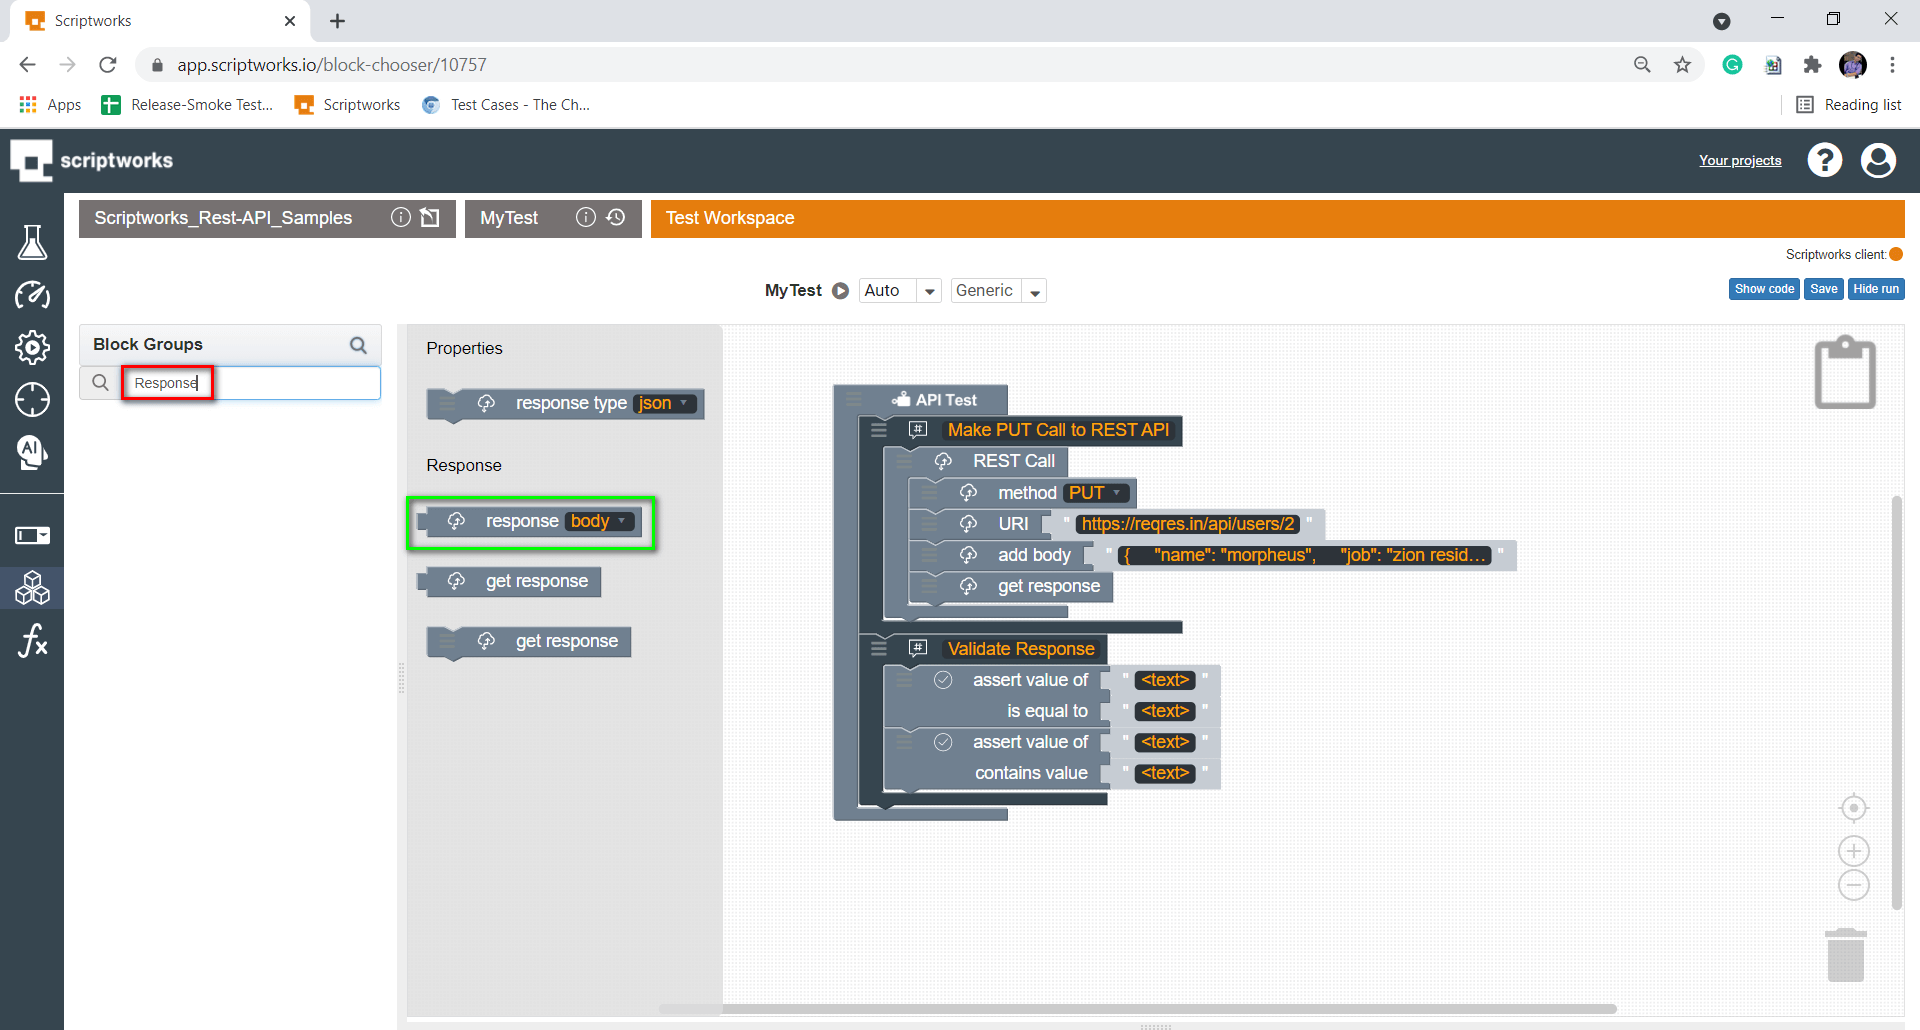 Searching Response block from search box present on left side panel